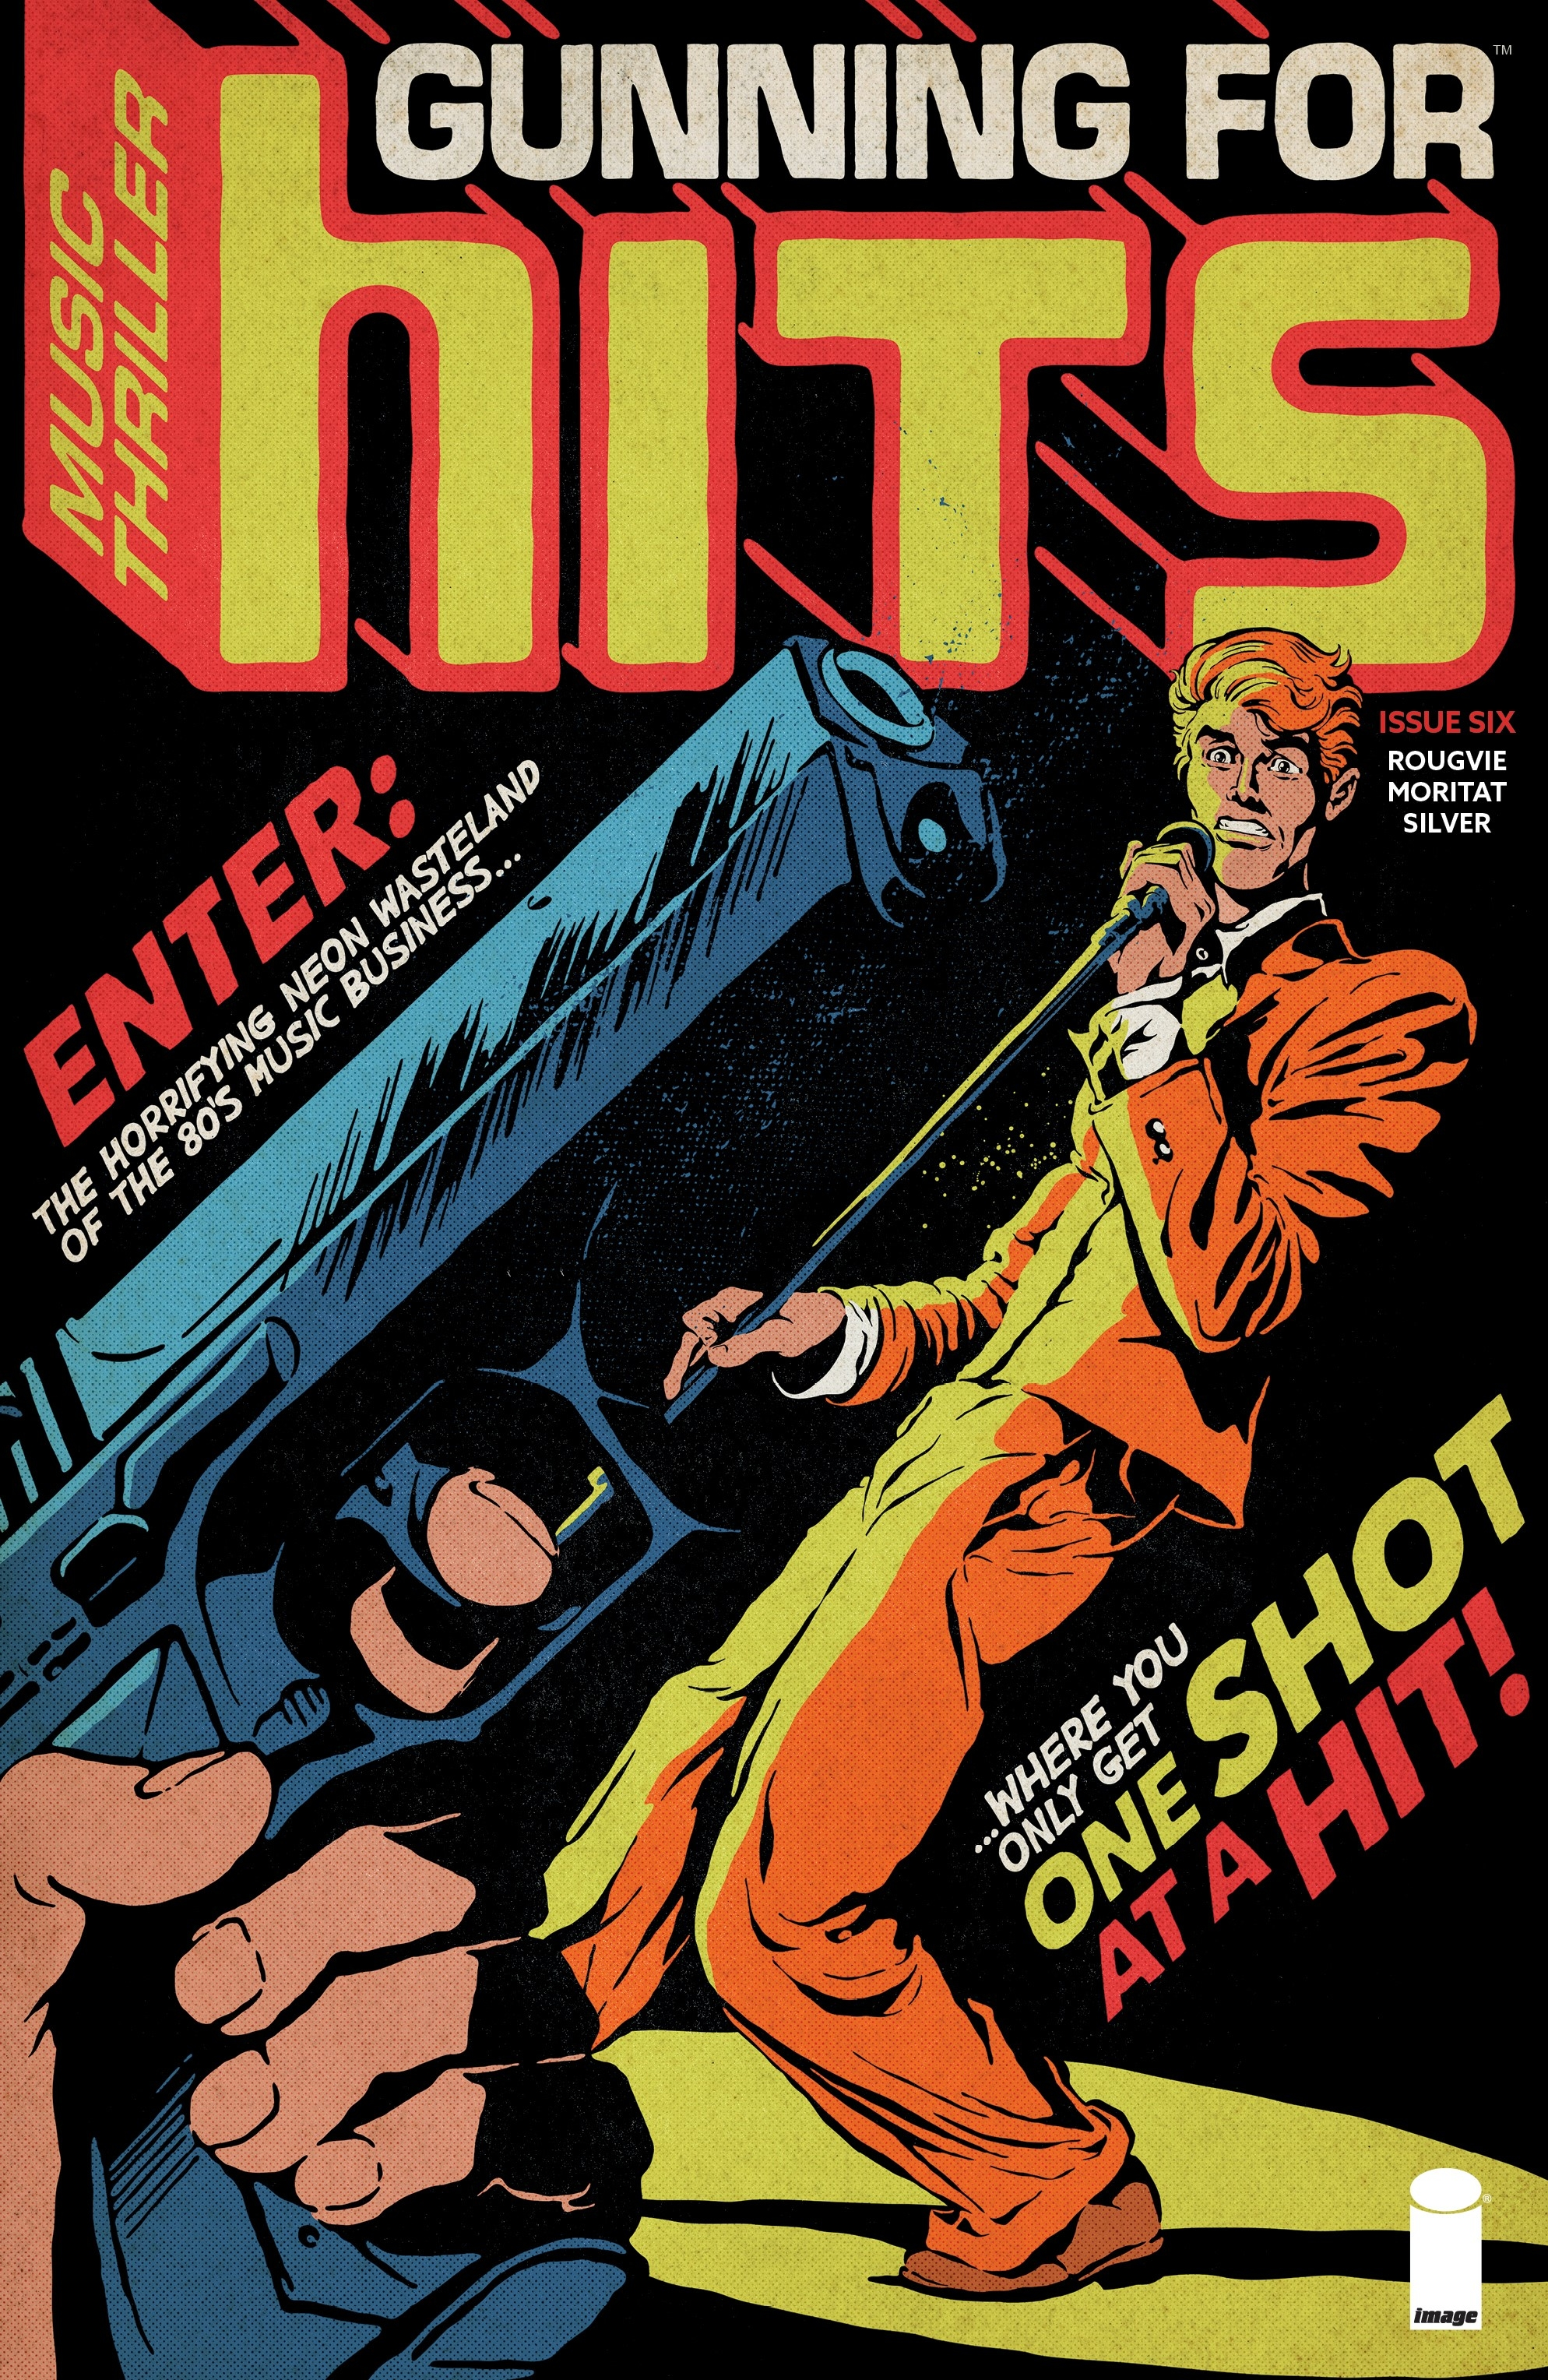 GUNNING FOR HITS #6 (MR)